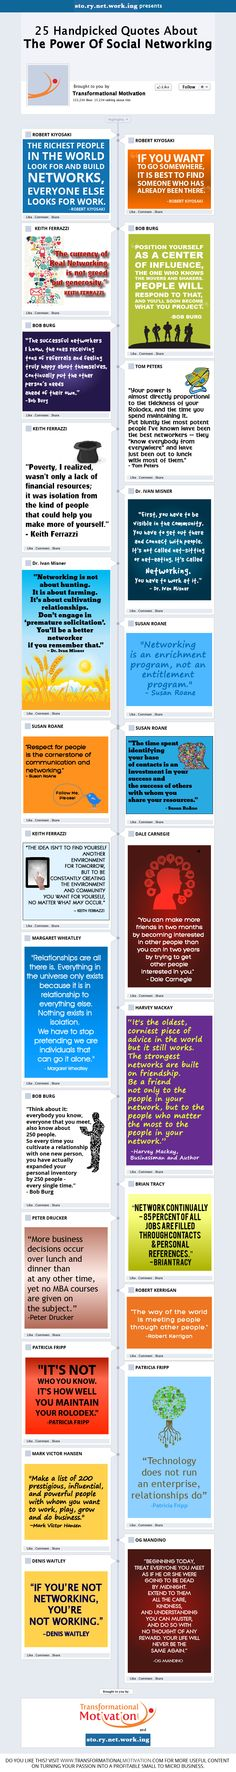 25 quotes about the power of social networking